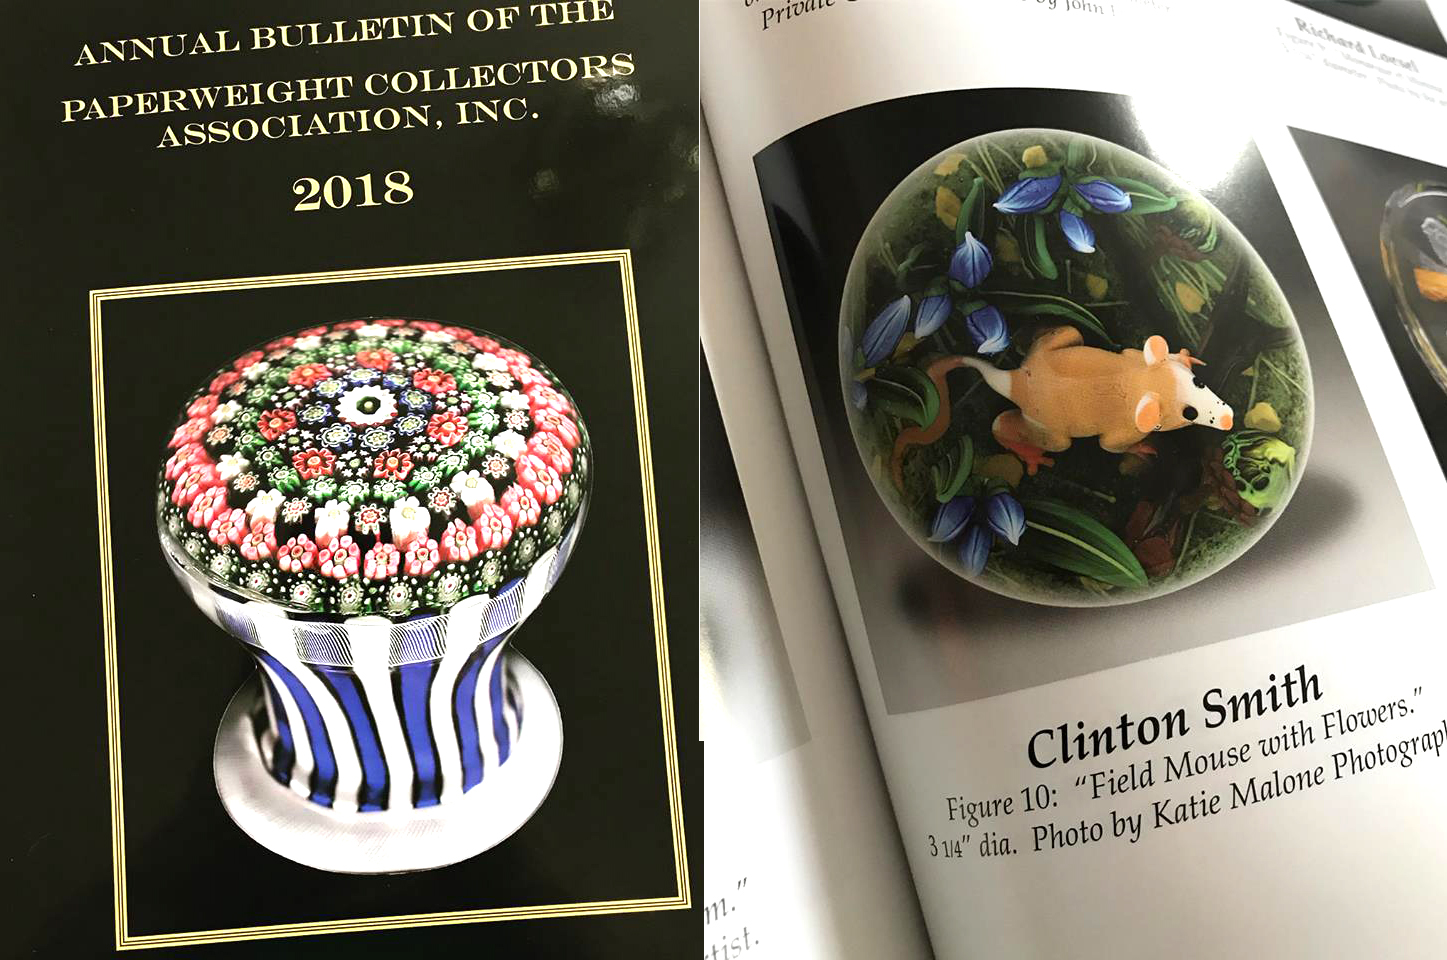 2018 Paperweight Collector's Association Bulletin 2018